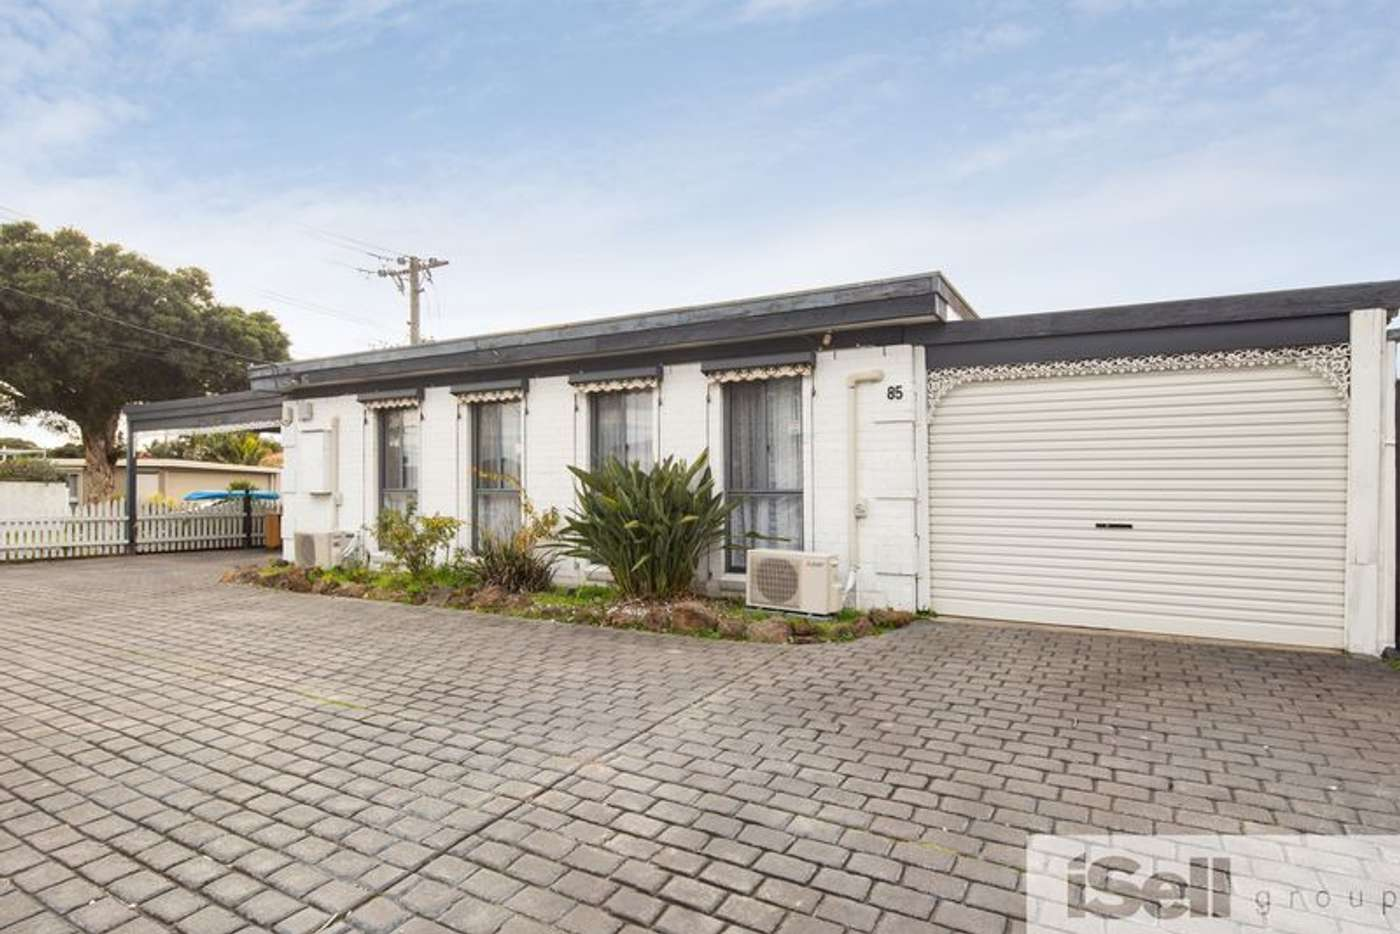 Main view of Homely house listing, 85 Kingsclere Avenue, Keysborough VIC 3173